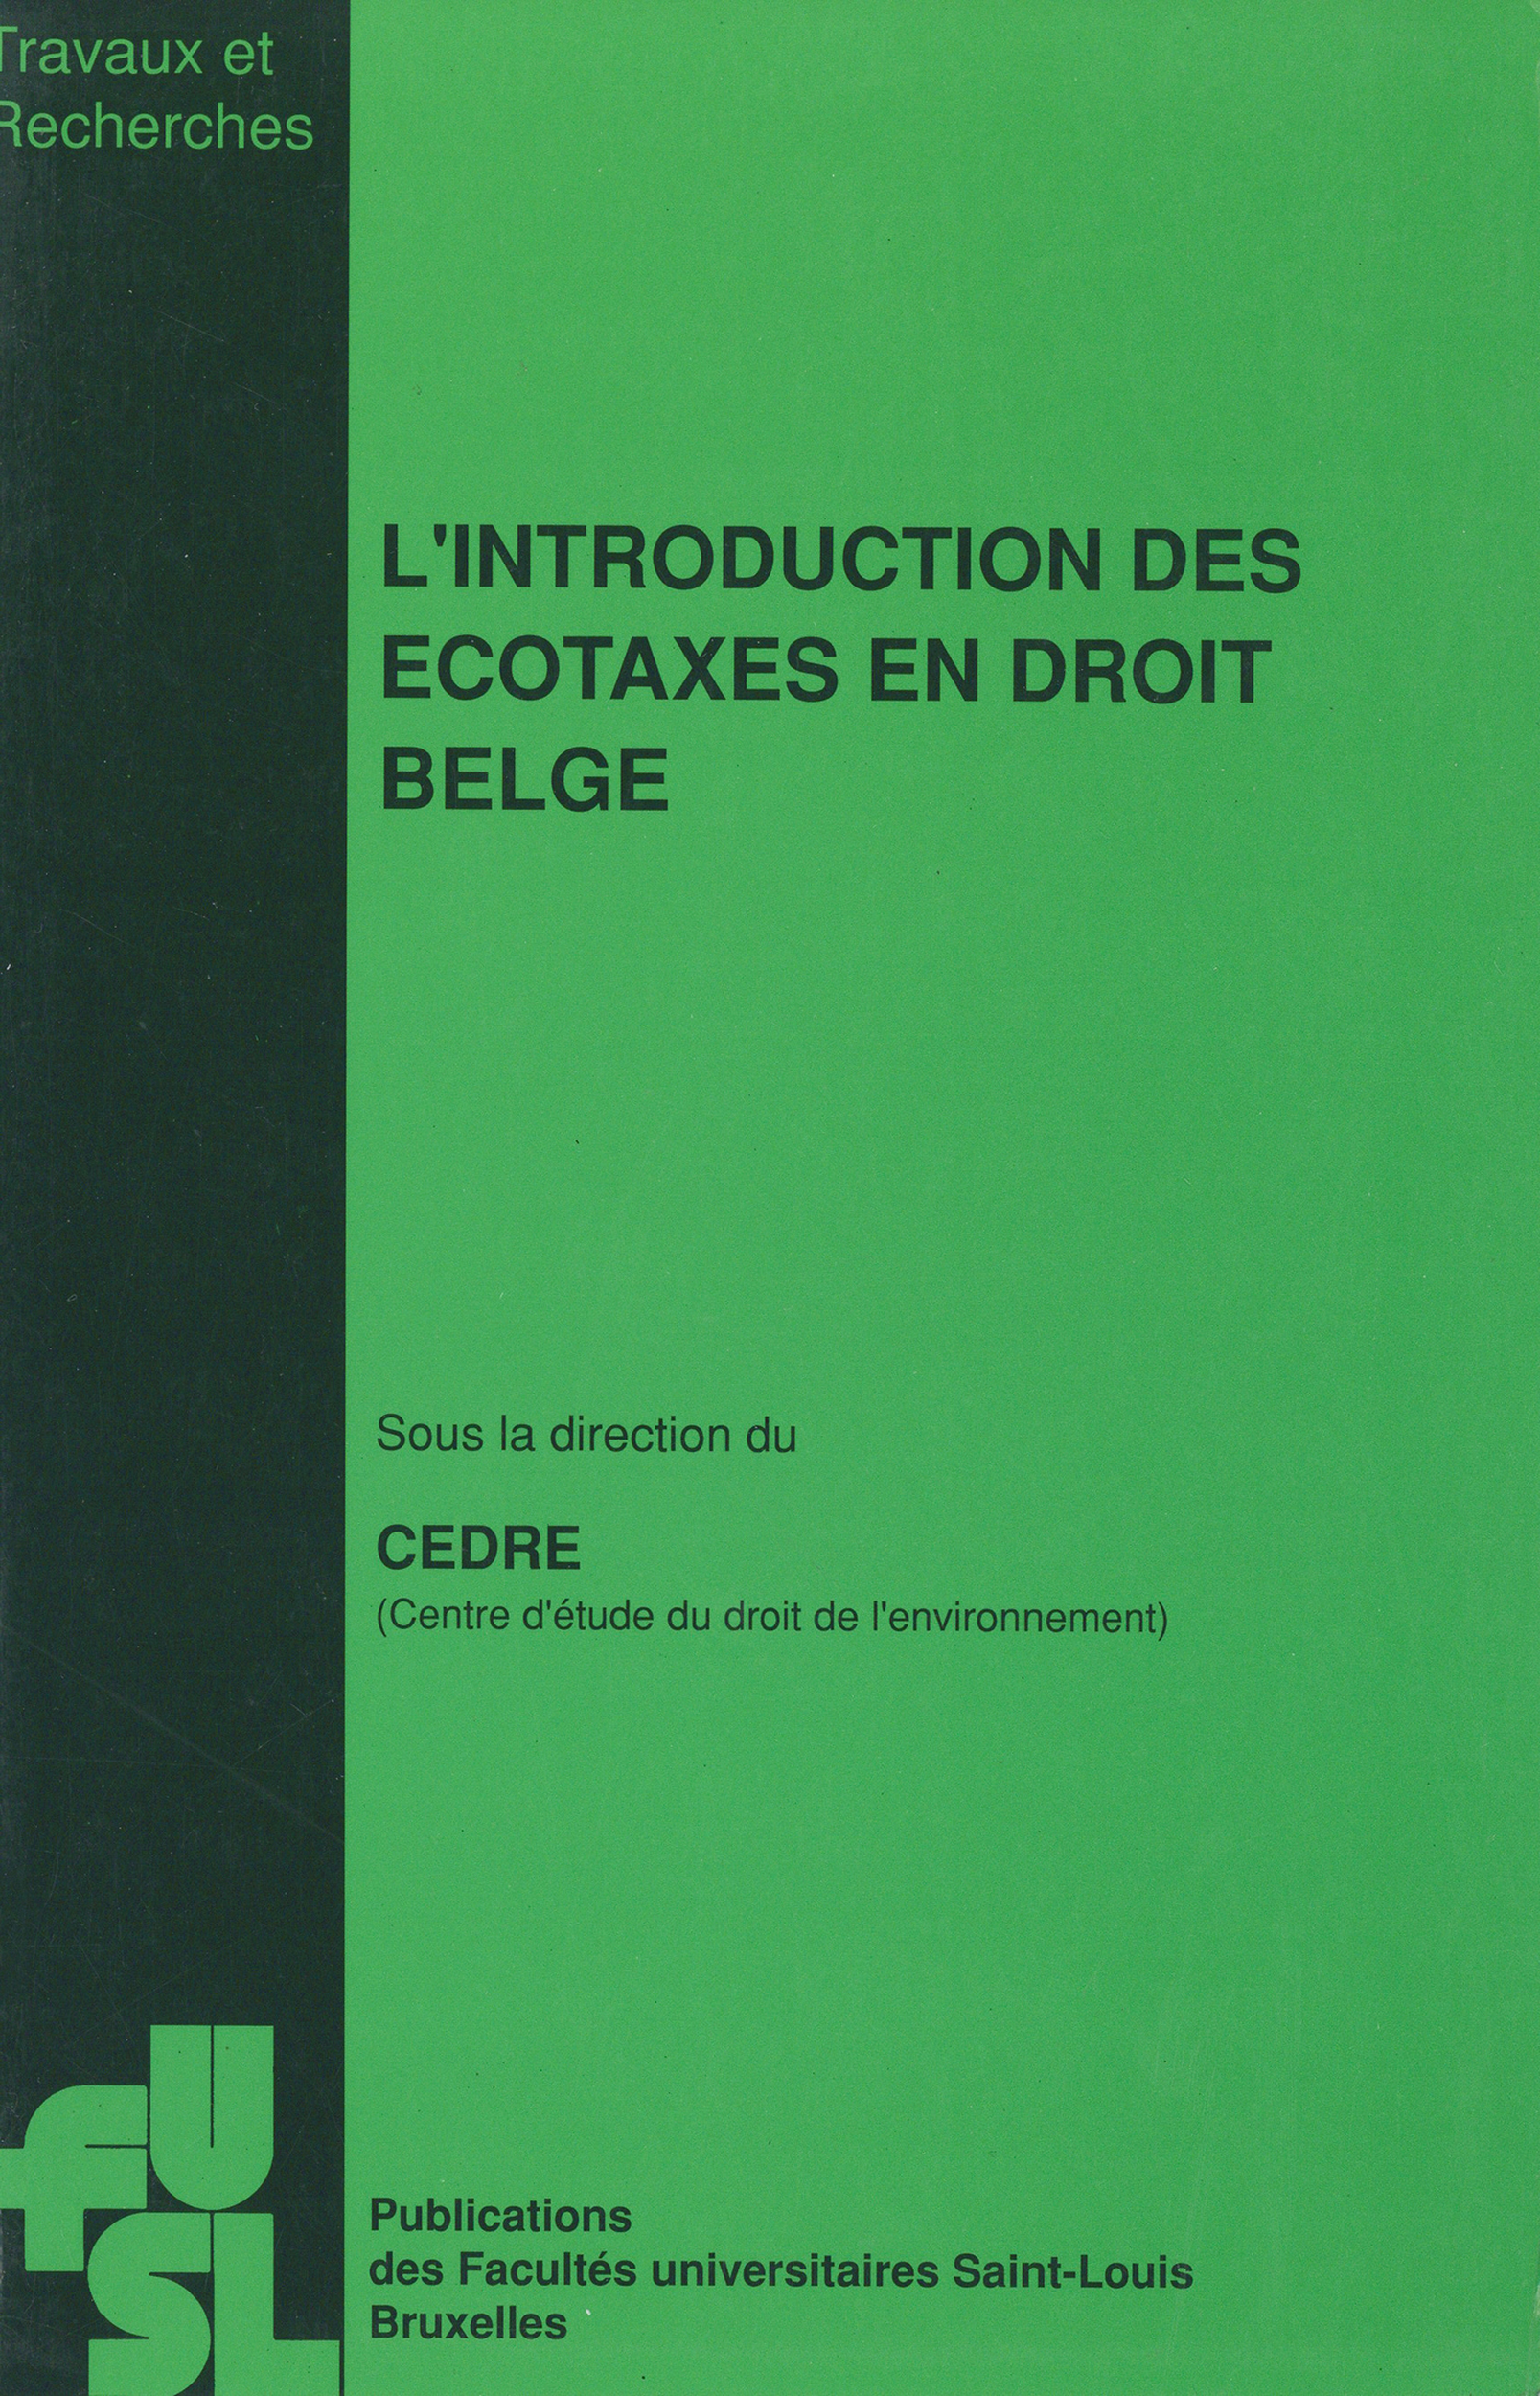 L'introduction des écotaxes en droit belge